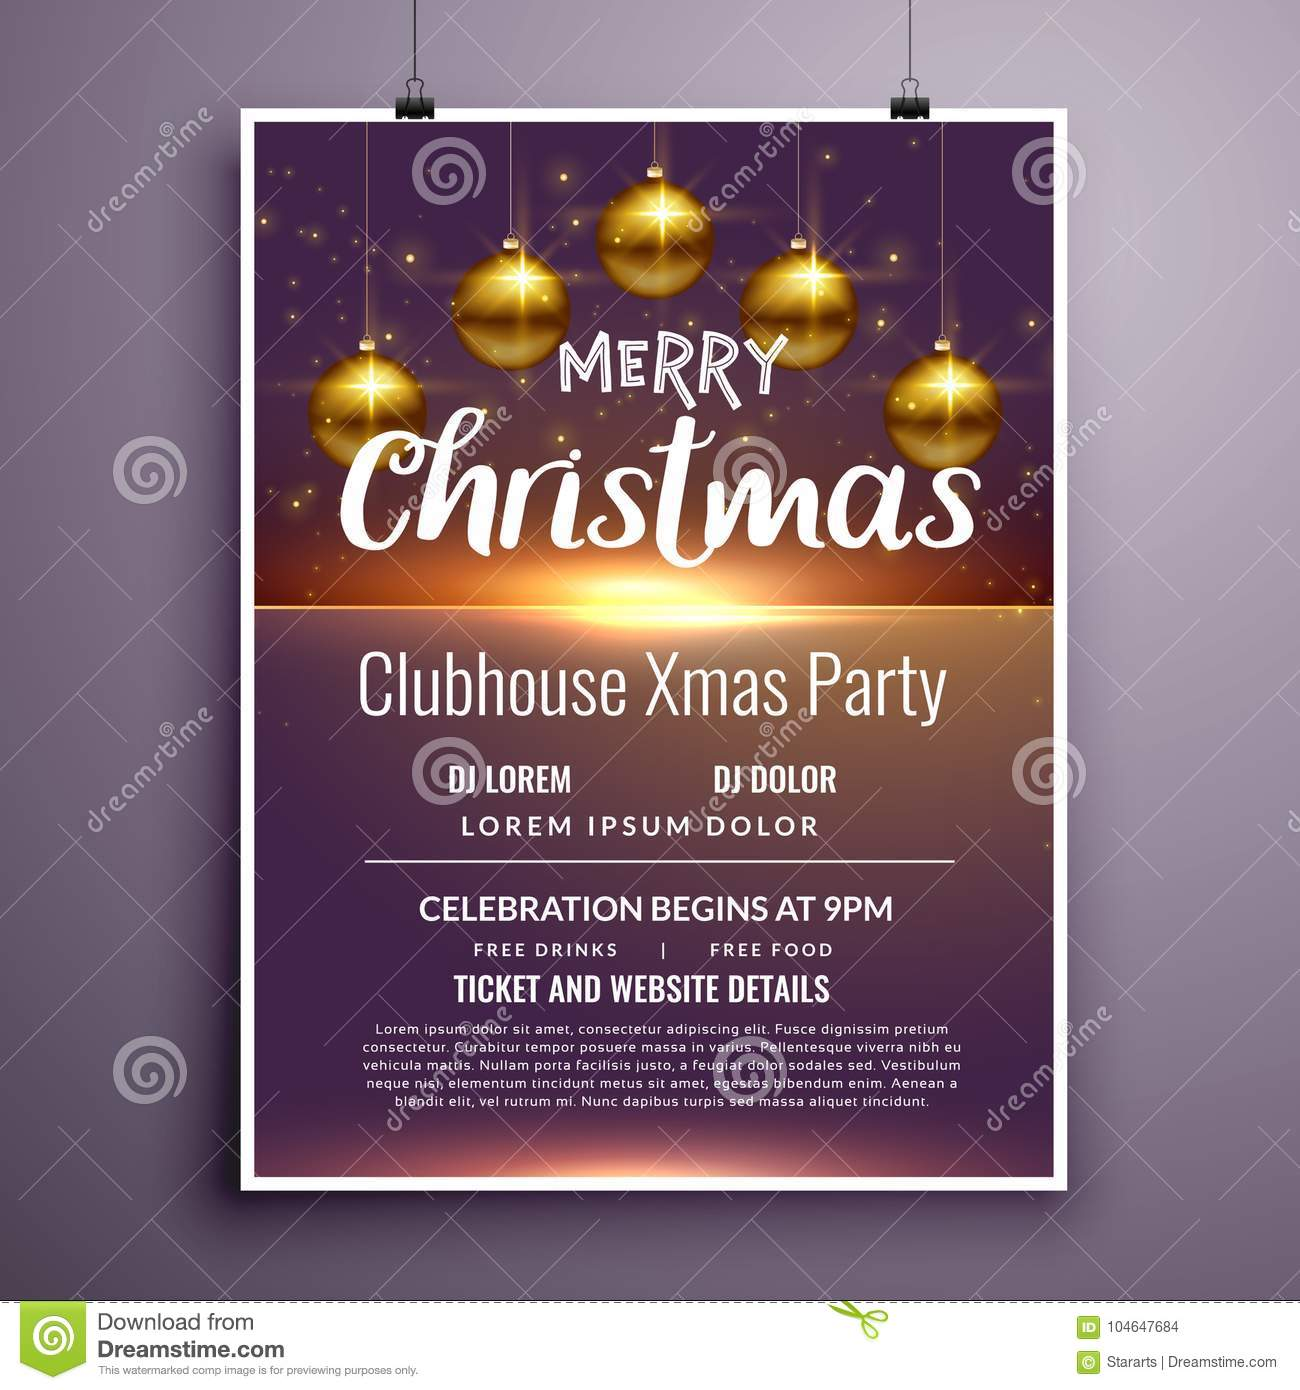 Download Elegant Merry Christmas Party Flyer Invitation Template Design  Stock Vector   Illustration Of Holiday,